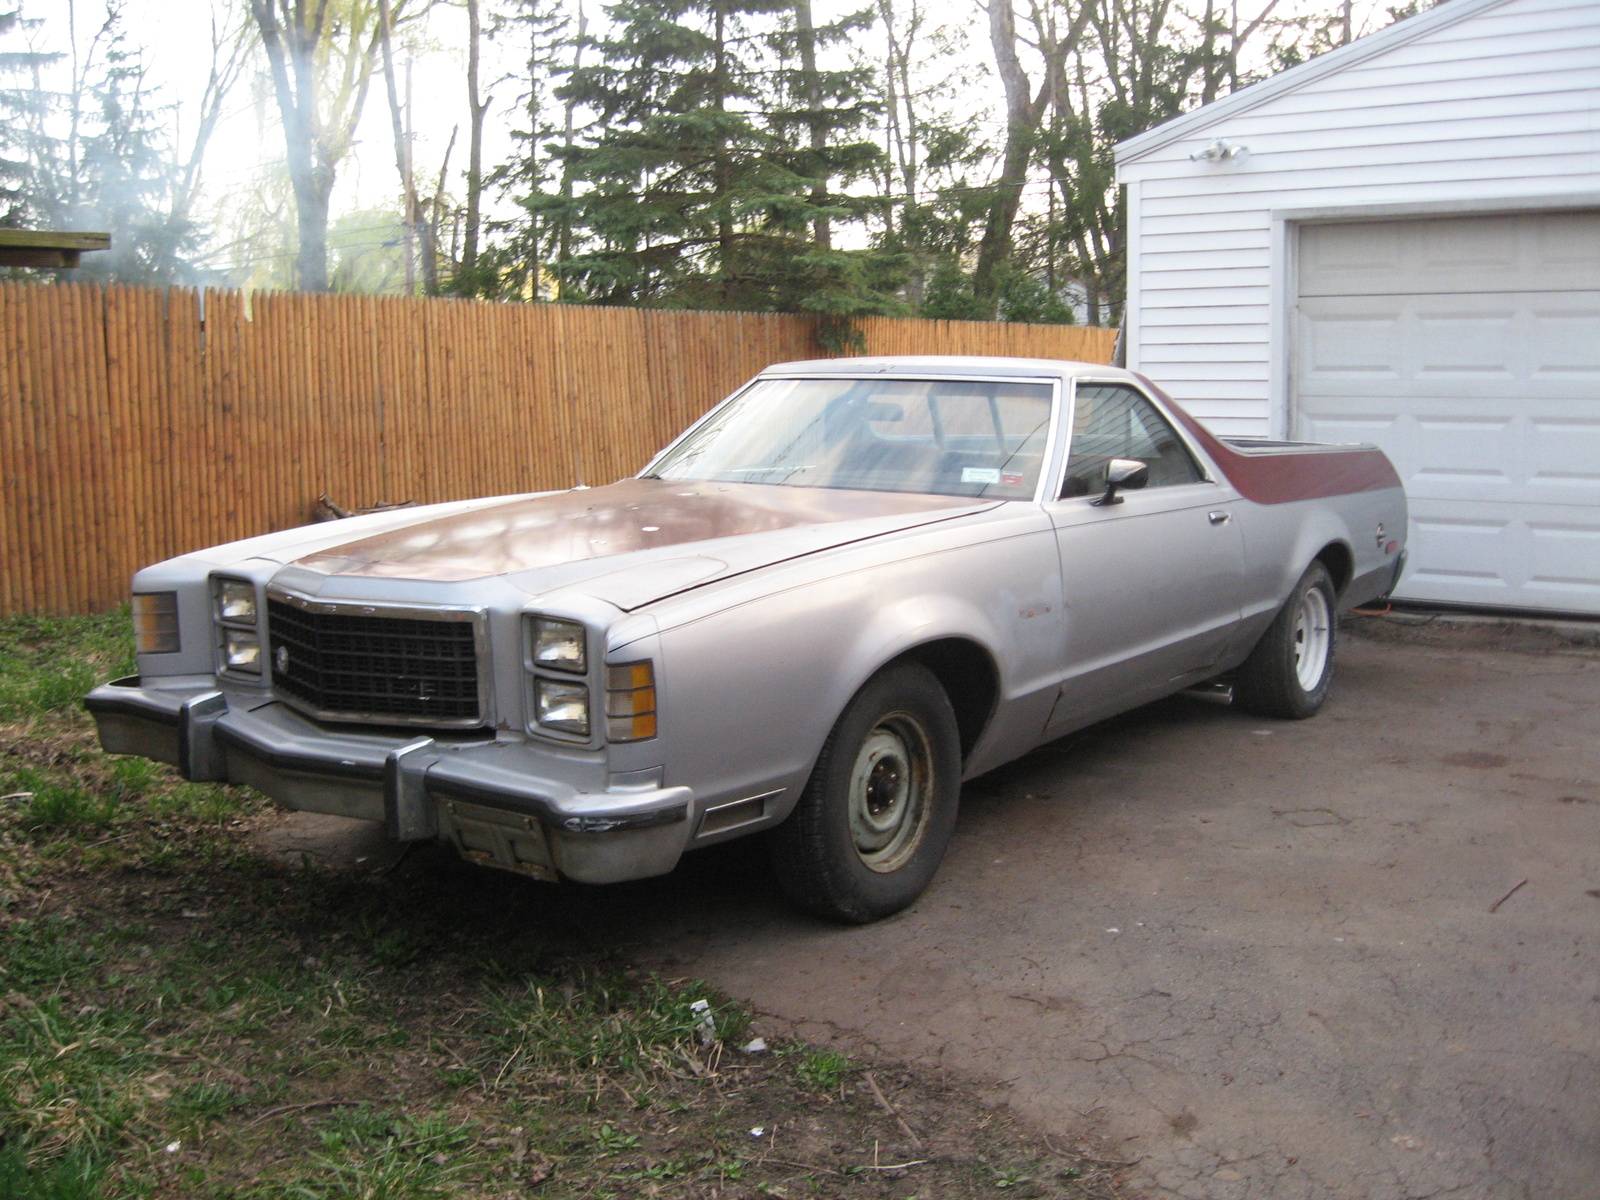 1979 Ford Ranchero picture, exterior